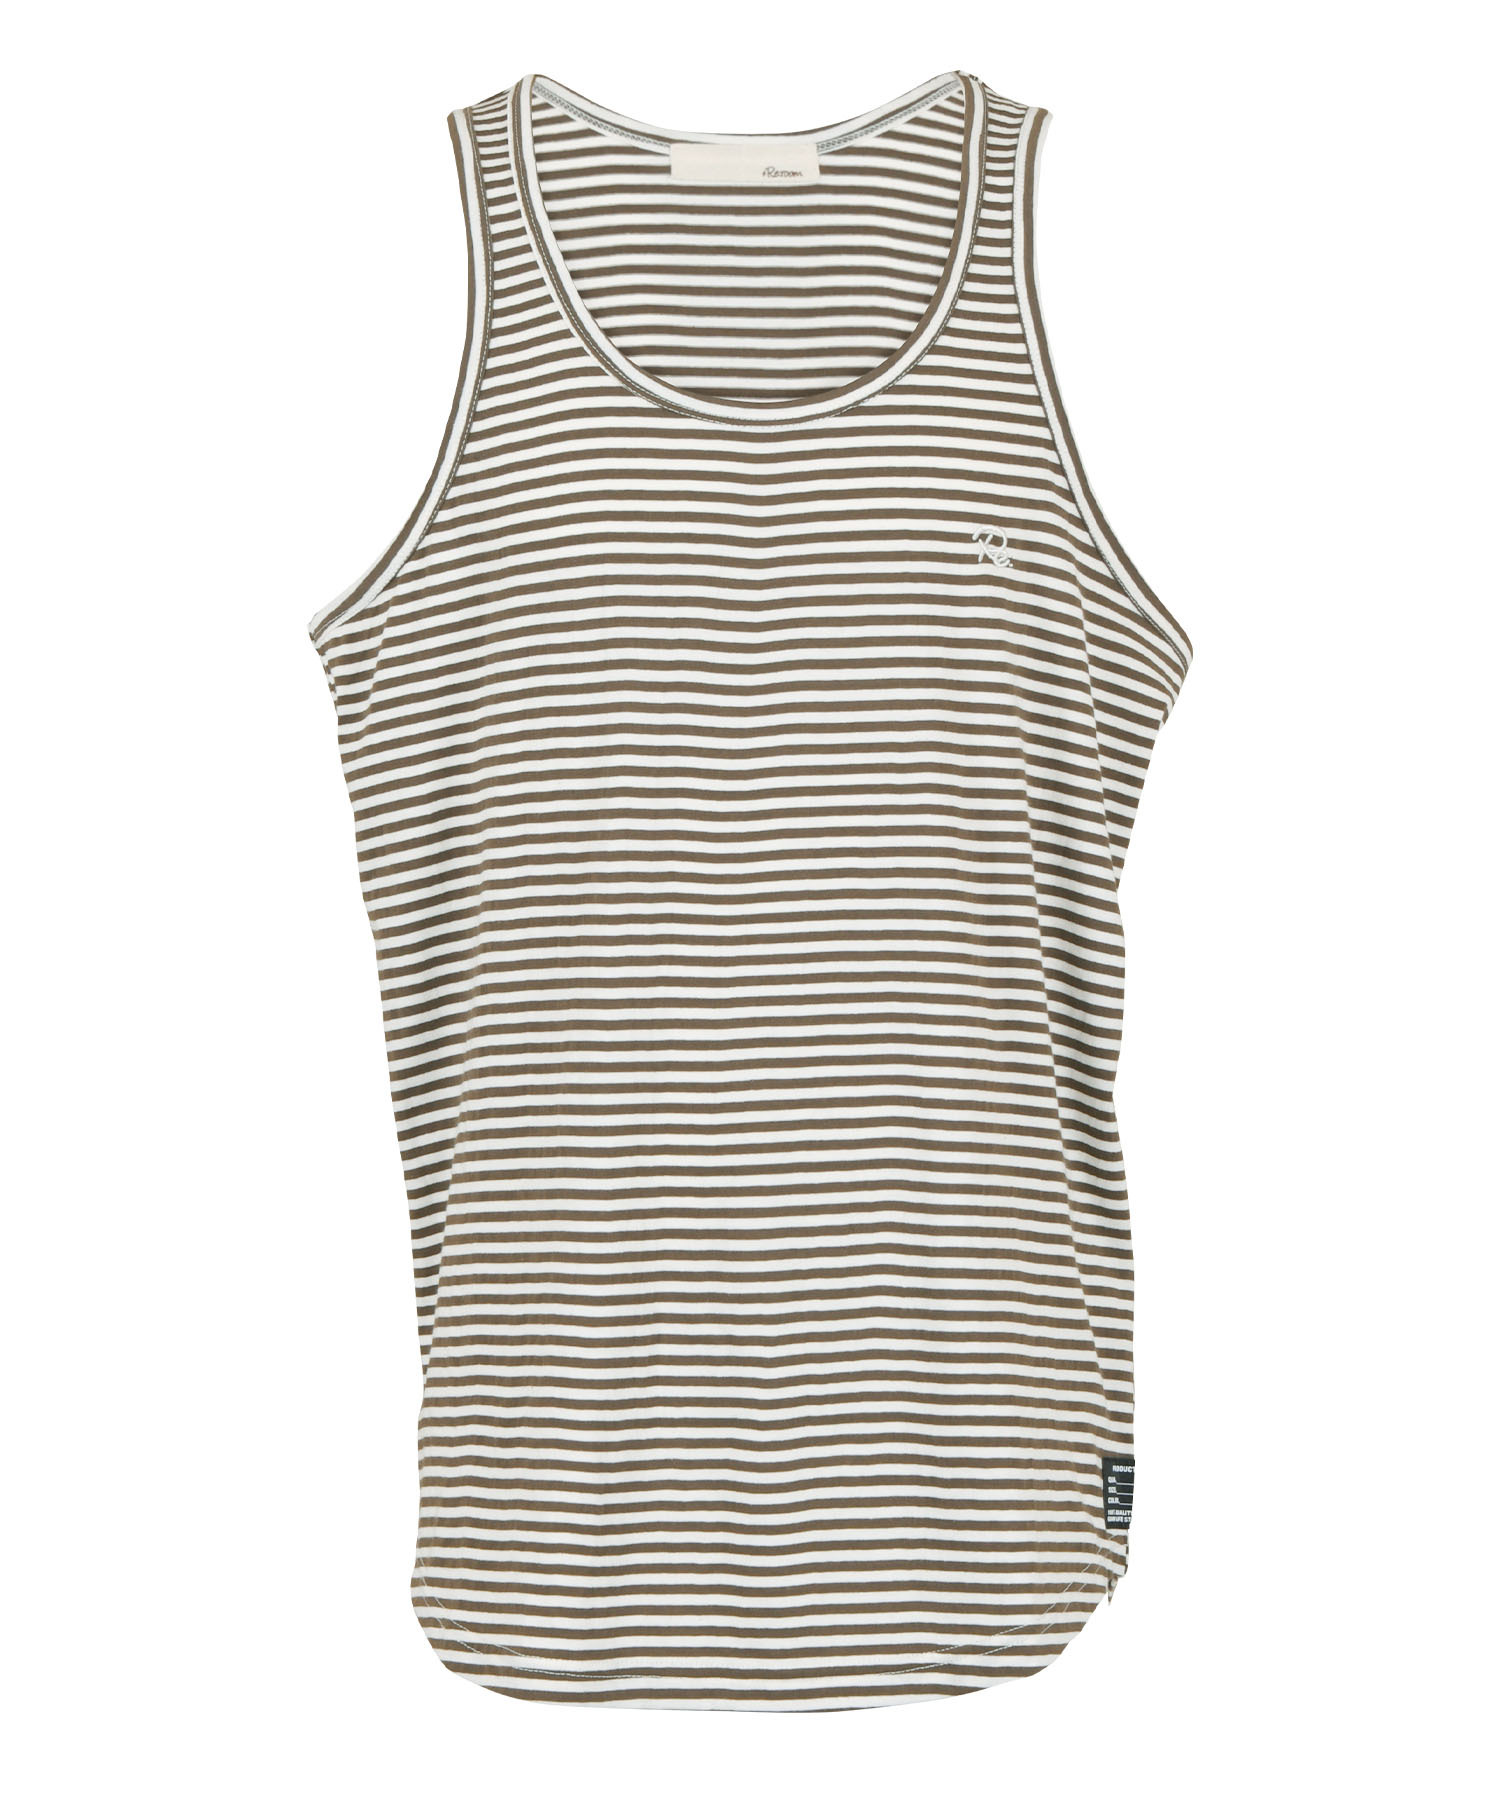 Re: ONE POINT BORDER TANK TOP[REC500]